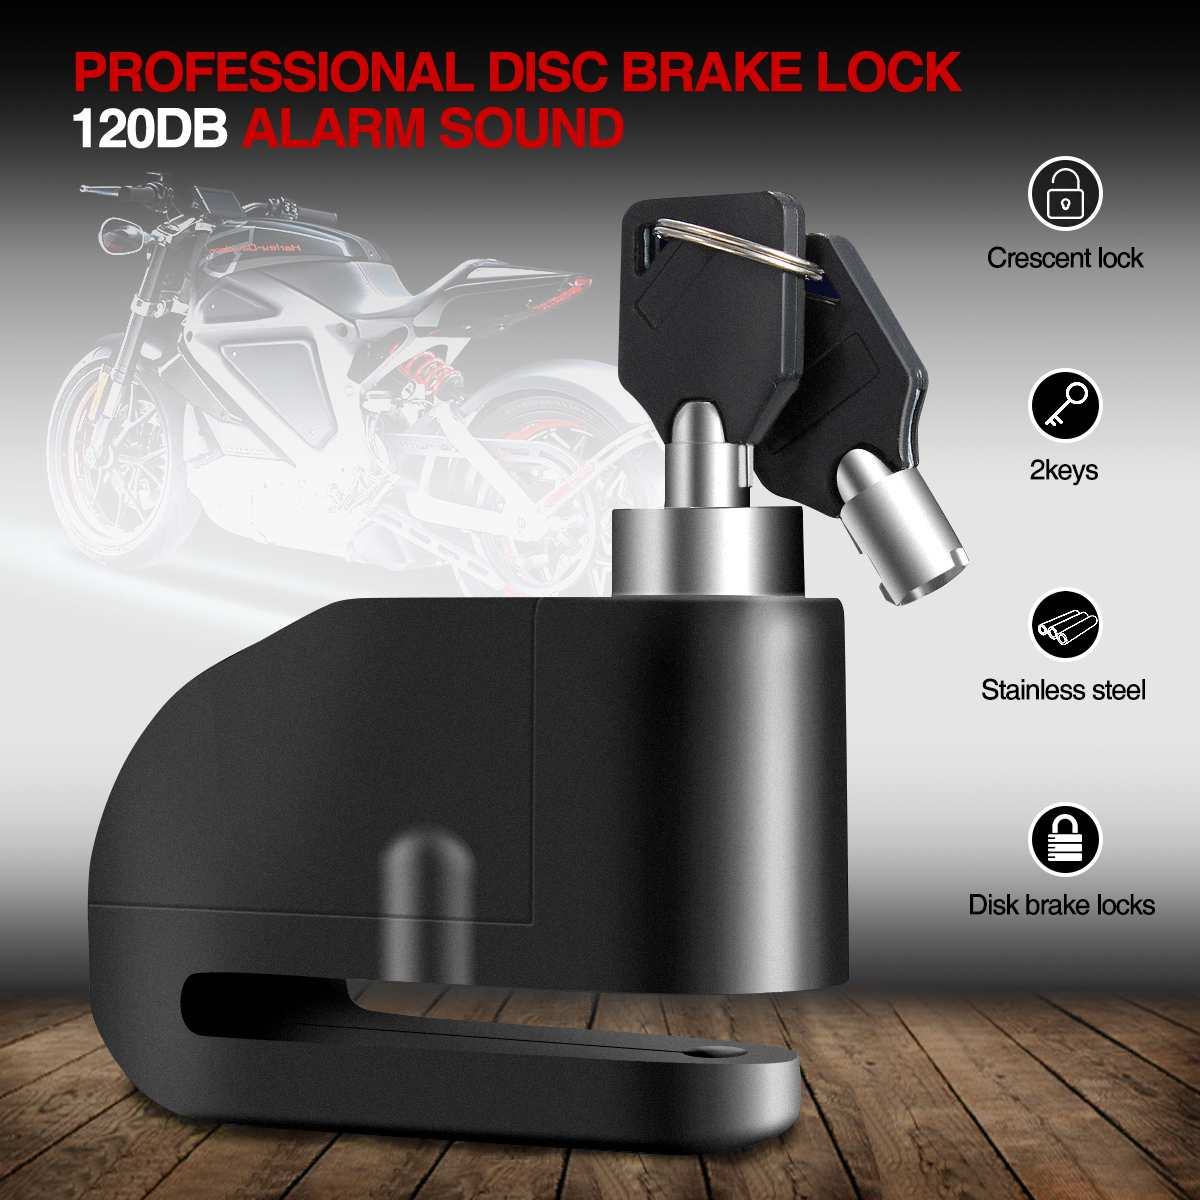 Motor Bike Motorcycle Sturdy Wheel Alarm Disc Brake Lock Security Anti Thief 120dbMotor Bike Motorcycle Sturdy Wheel Alarm Disc Brake Lock Security Anti Thief 120db